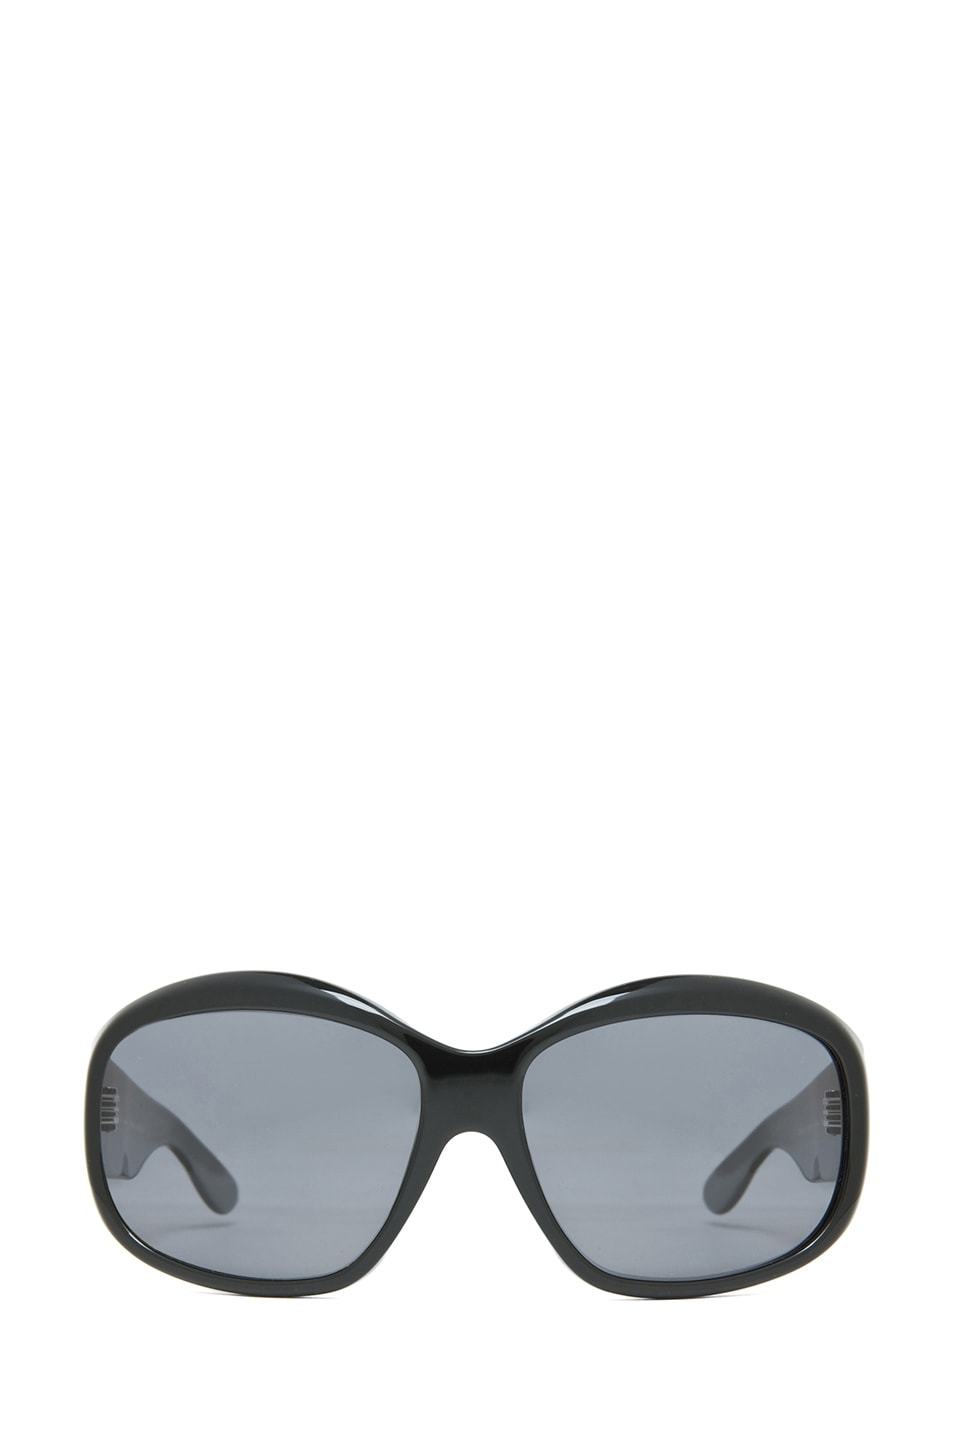 Image 1 of Oliver Peoples Rovella Polarized Sunglasses in Black